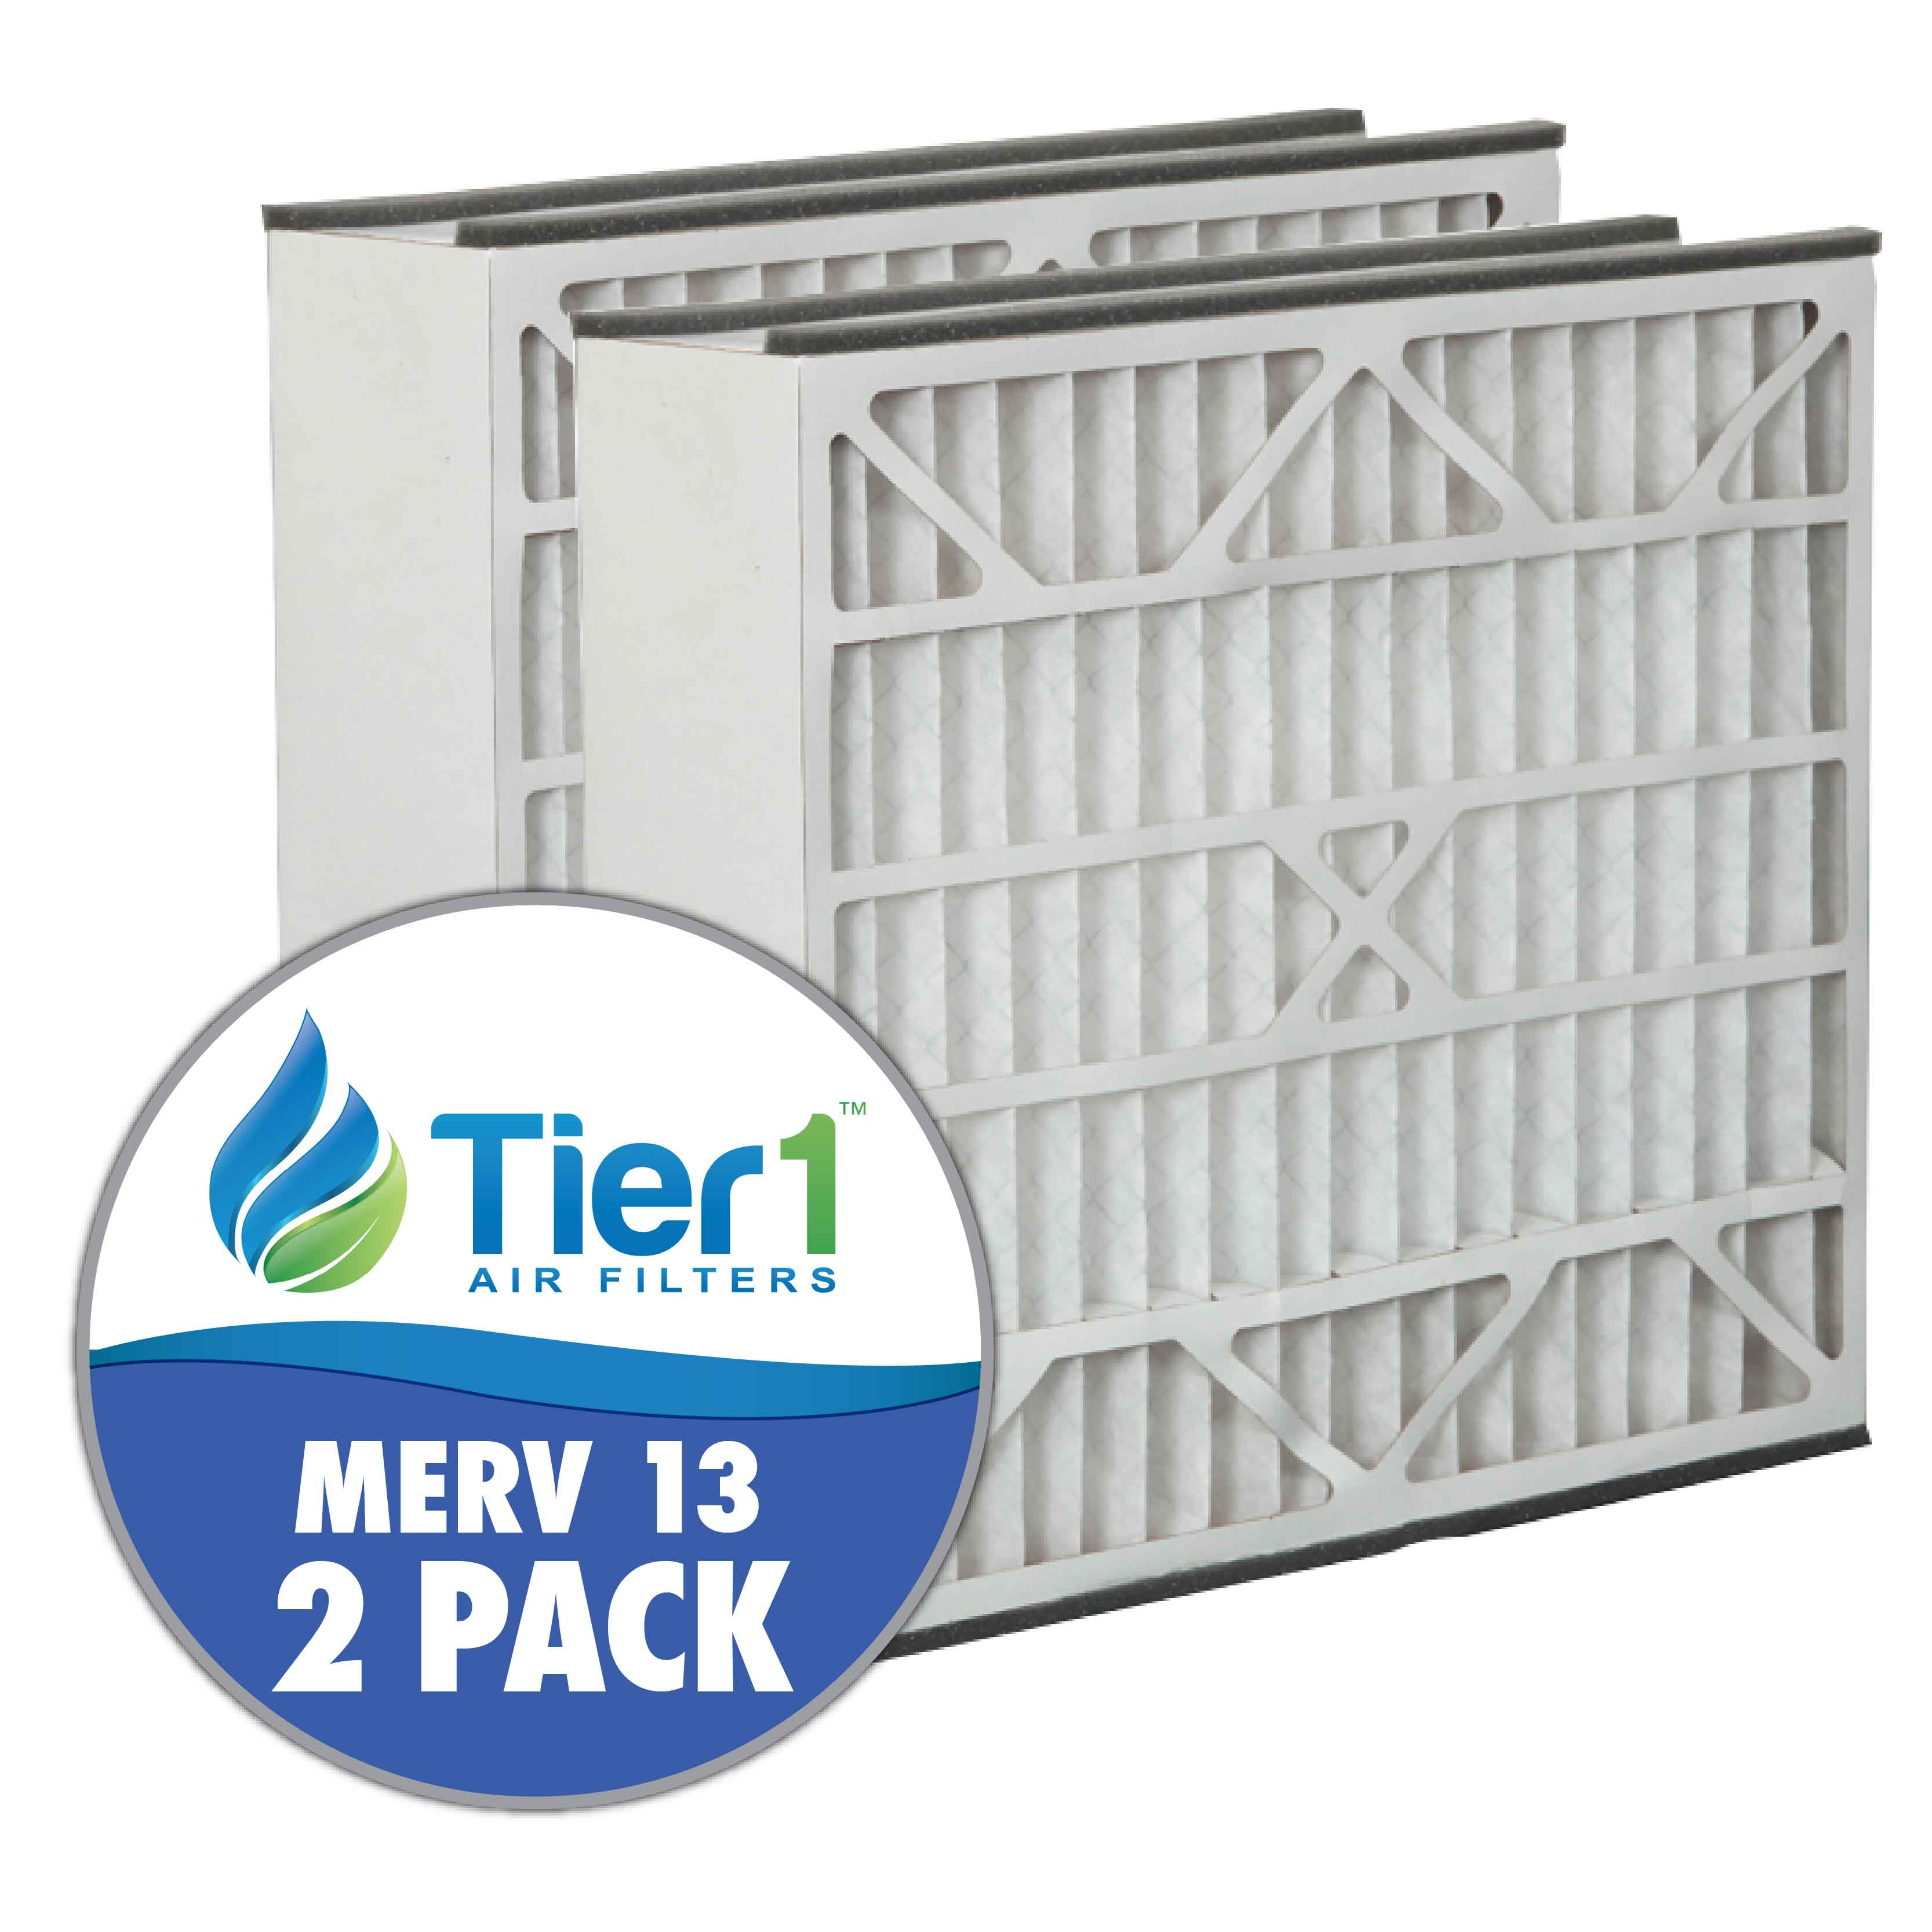 Tier1 brand replacement for BDP - 20 x 25 x 5 - MERV 13 (2-Pack) TIER1-DPFR20X25X5M13DBP